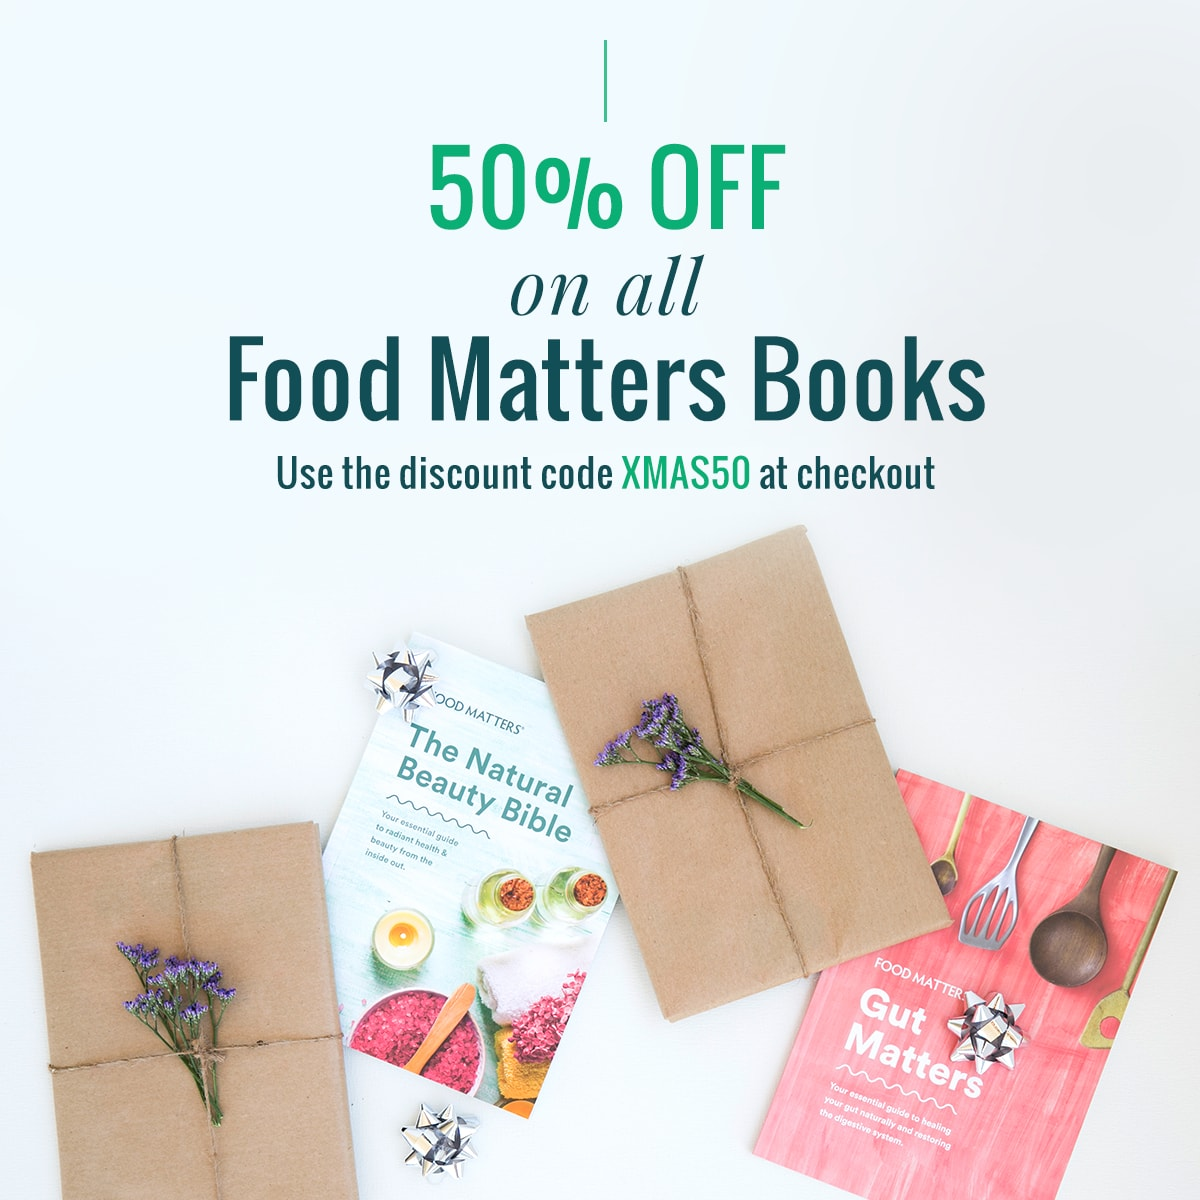 The food matters 10 days of christmas food matters get 50 off all food matters printed books for the next 24 hours our collection of healthy books include recipes natural diy recipes cleanse and detox forumfinder Images